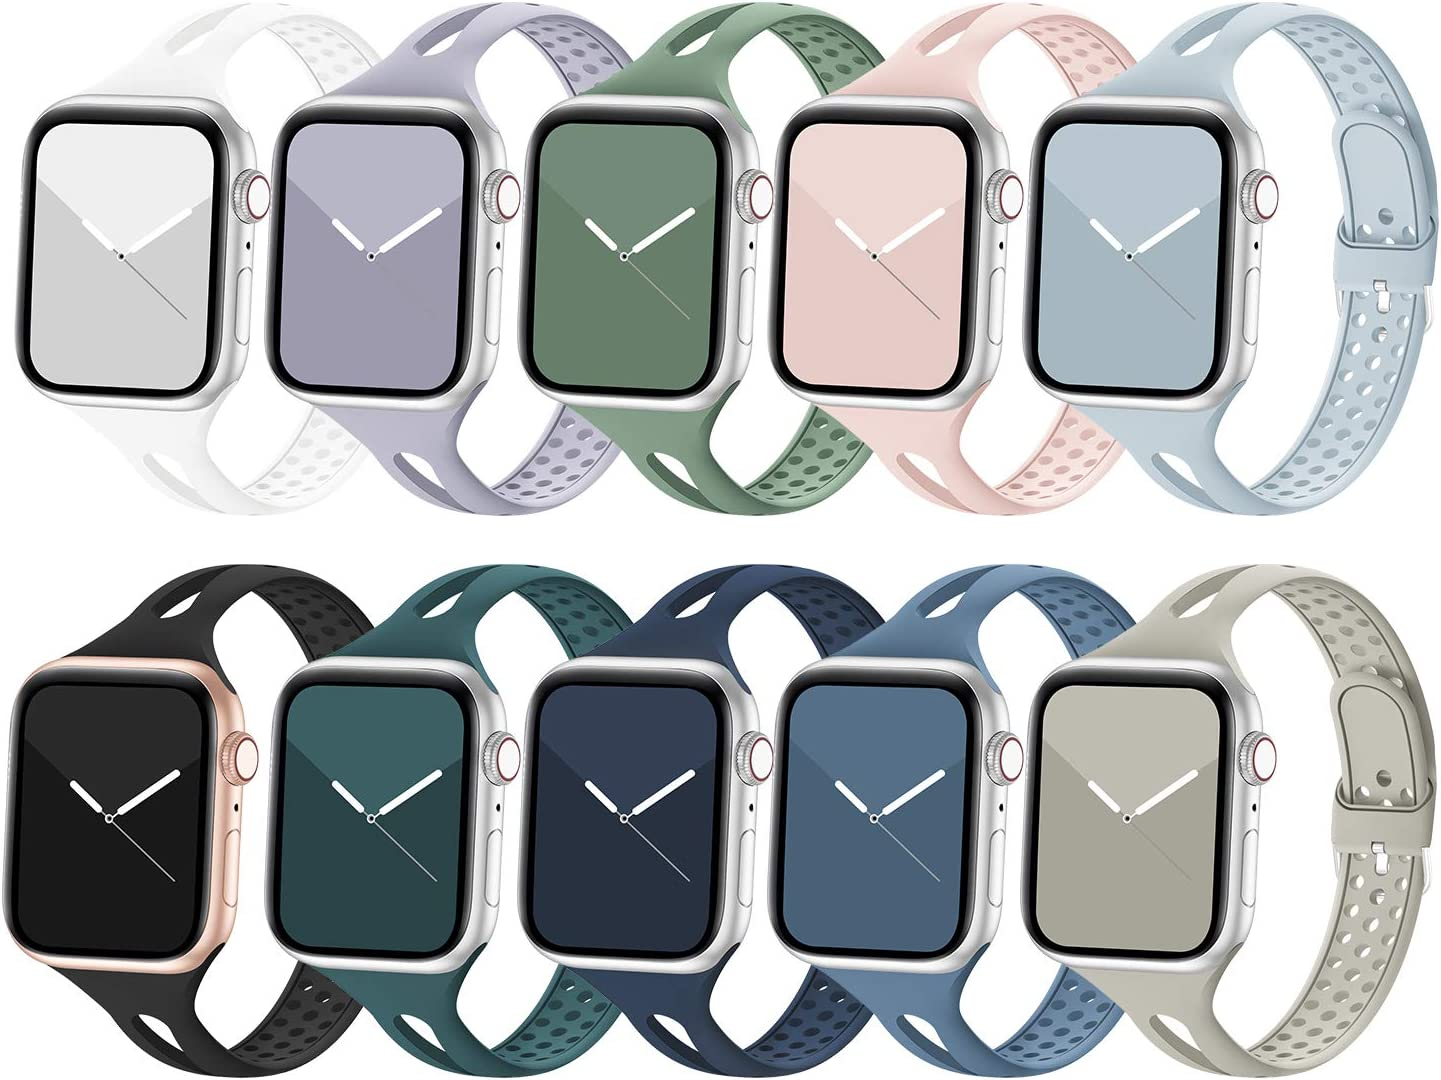 Bandiction Compatible with Apple Watch Bands 42mm 44mm Series 5 Series 3 Women Slim Silicone Sport Band Breathable iWatch Bands Narrow Replacement Strap for iWatch Series 6 SE 5 4 3 2 1, 42/44mm